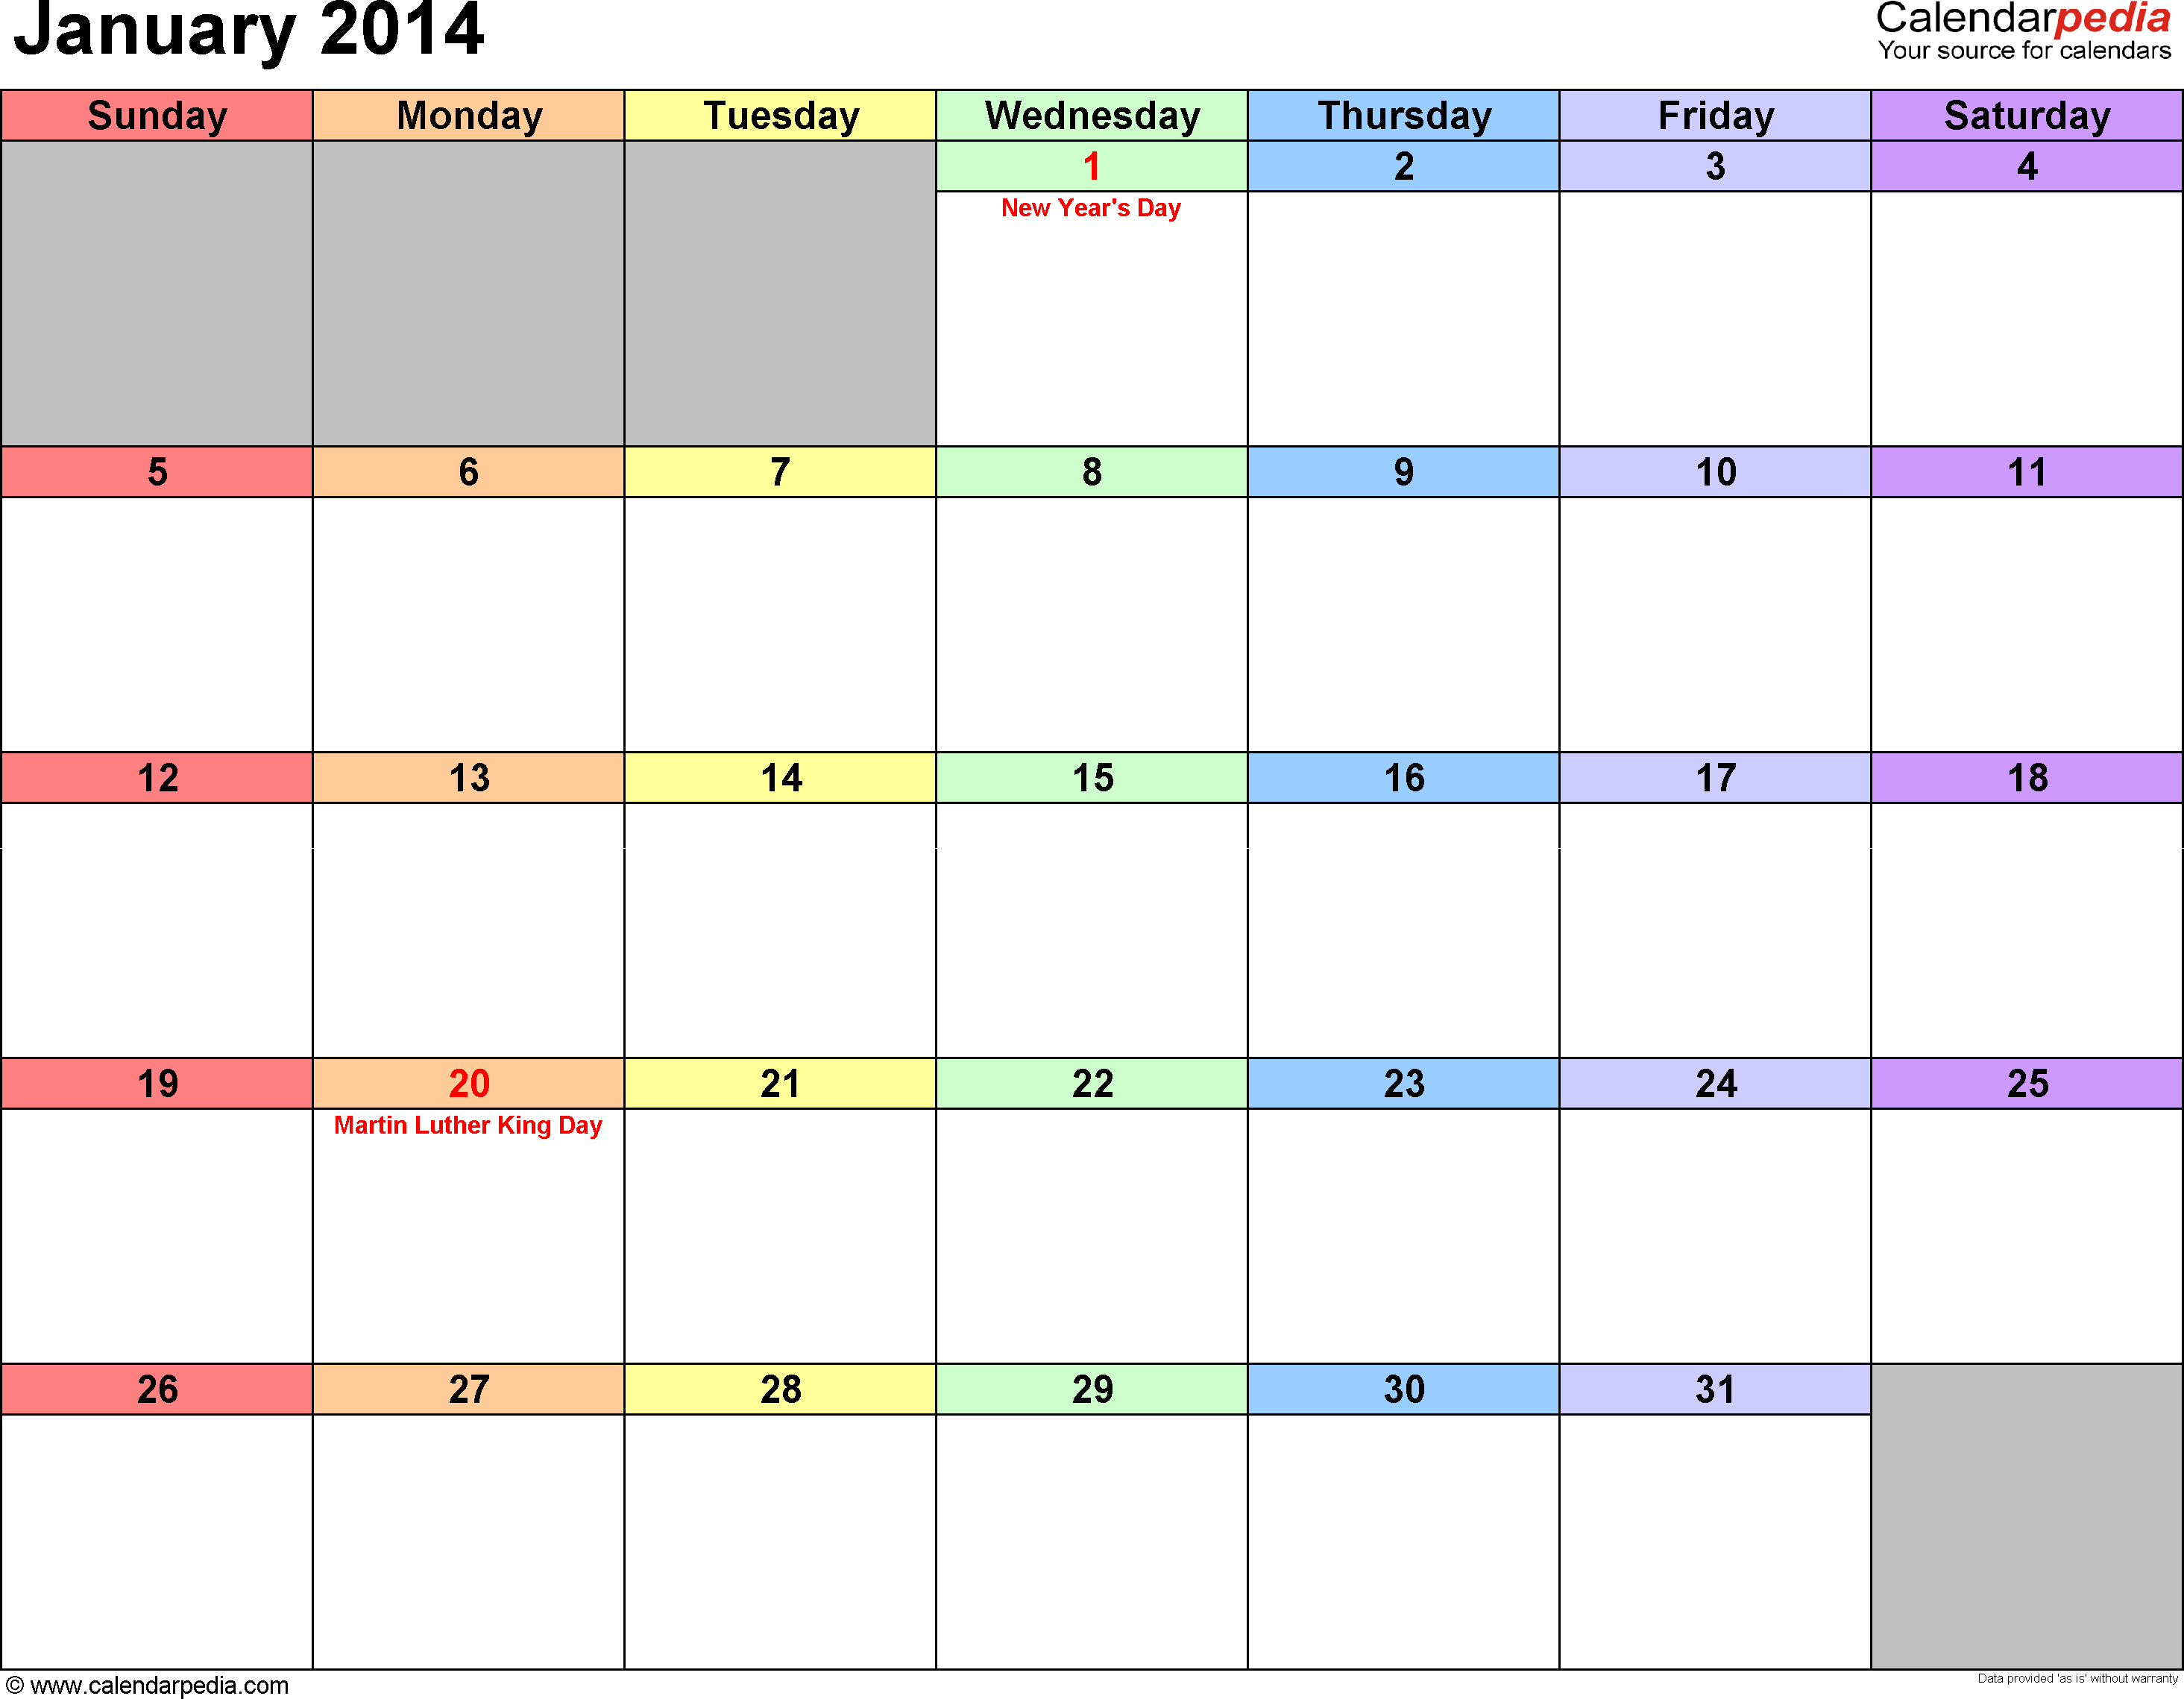 January 2014 calendar printable template